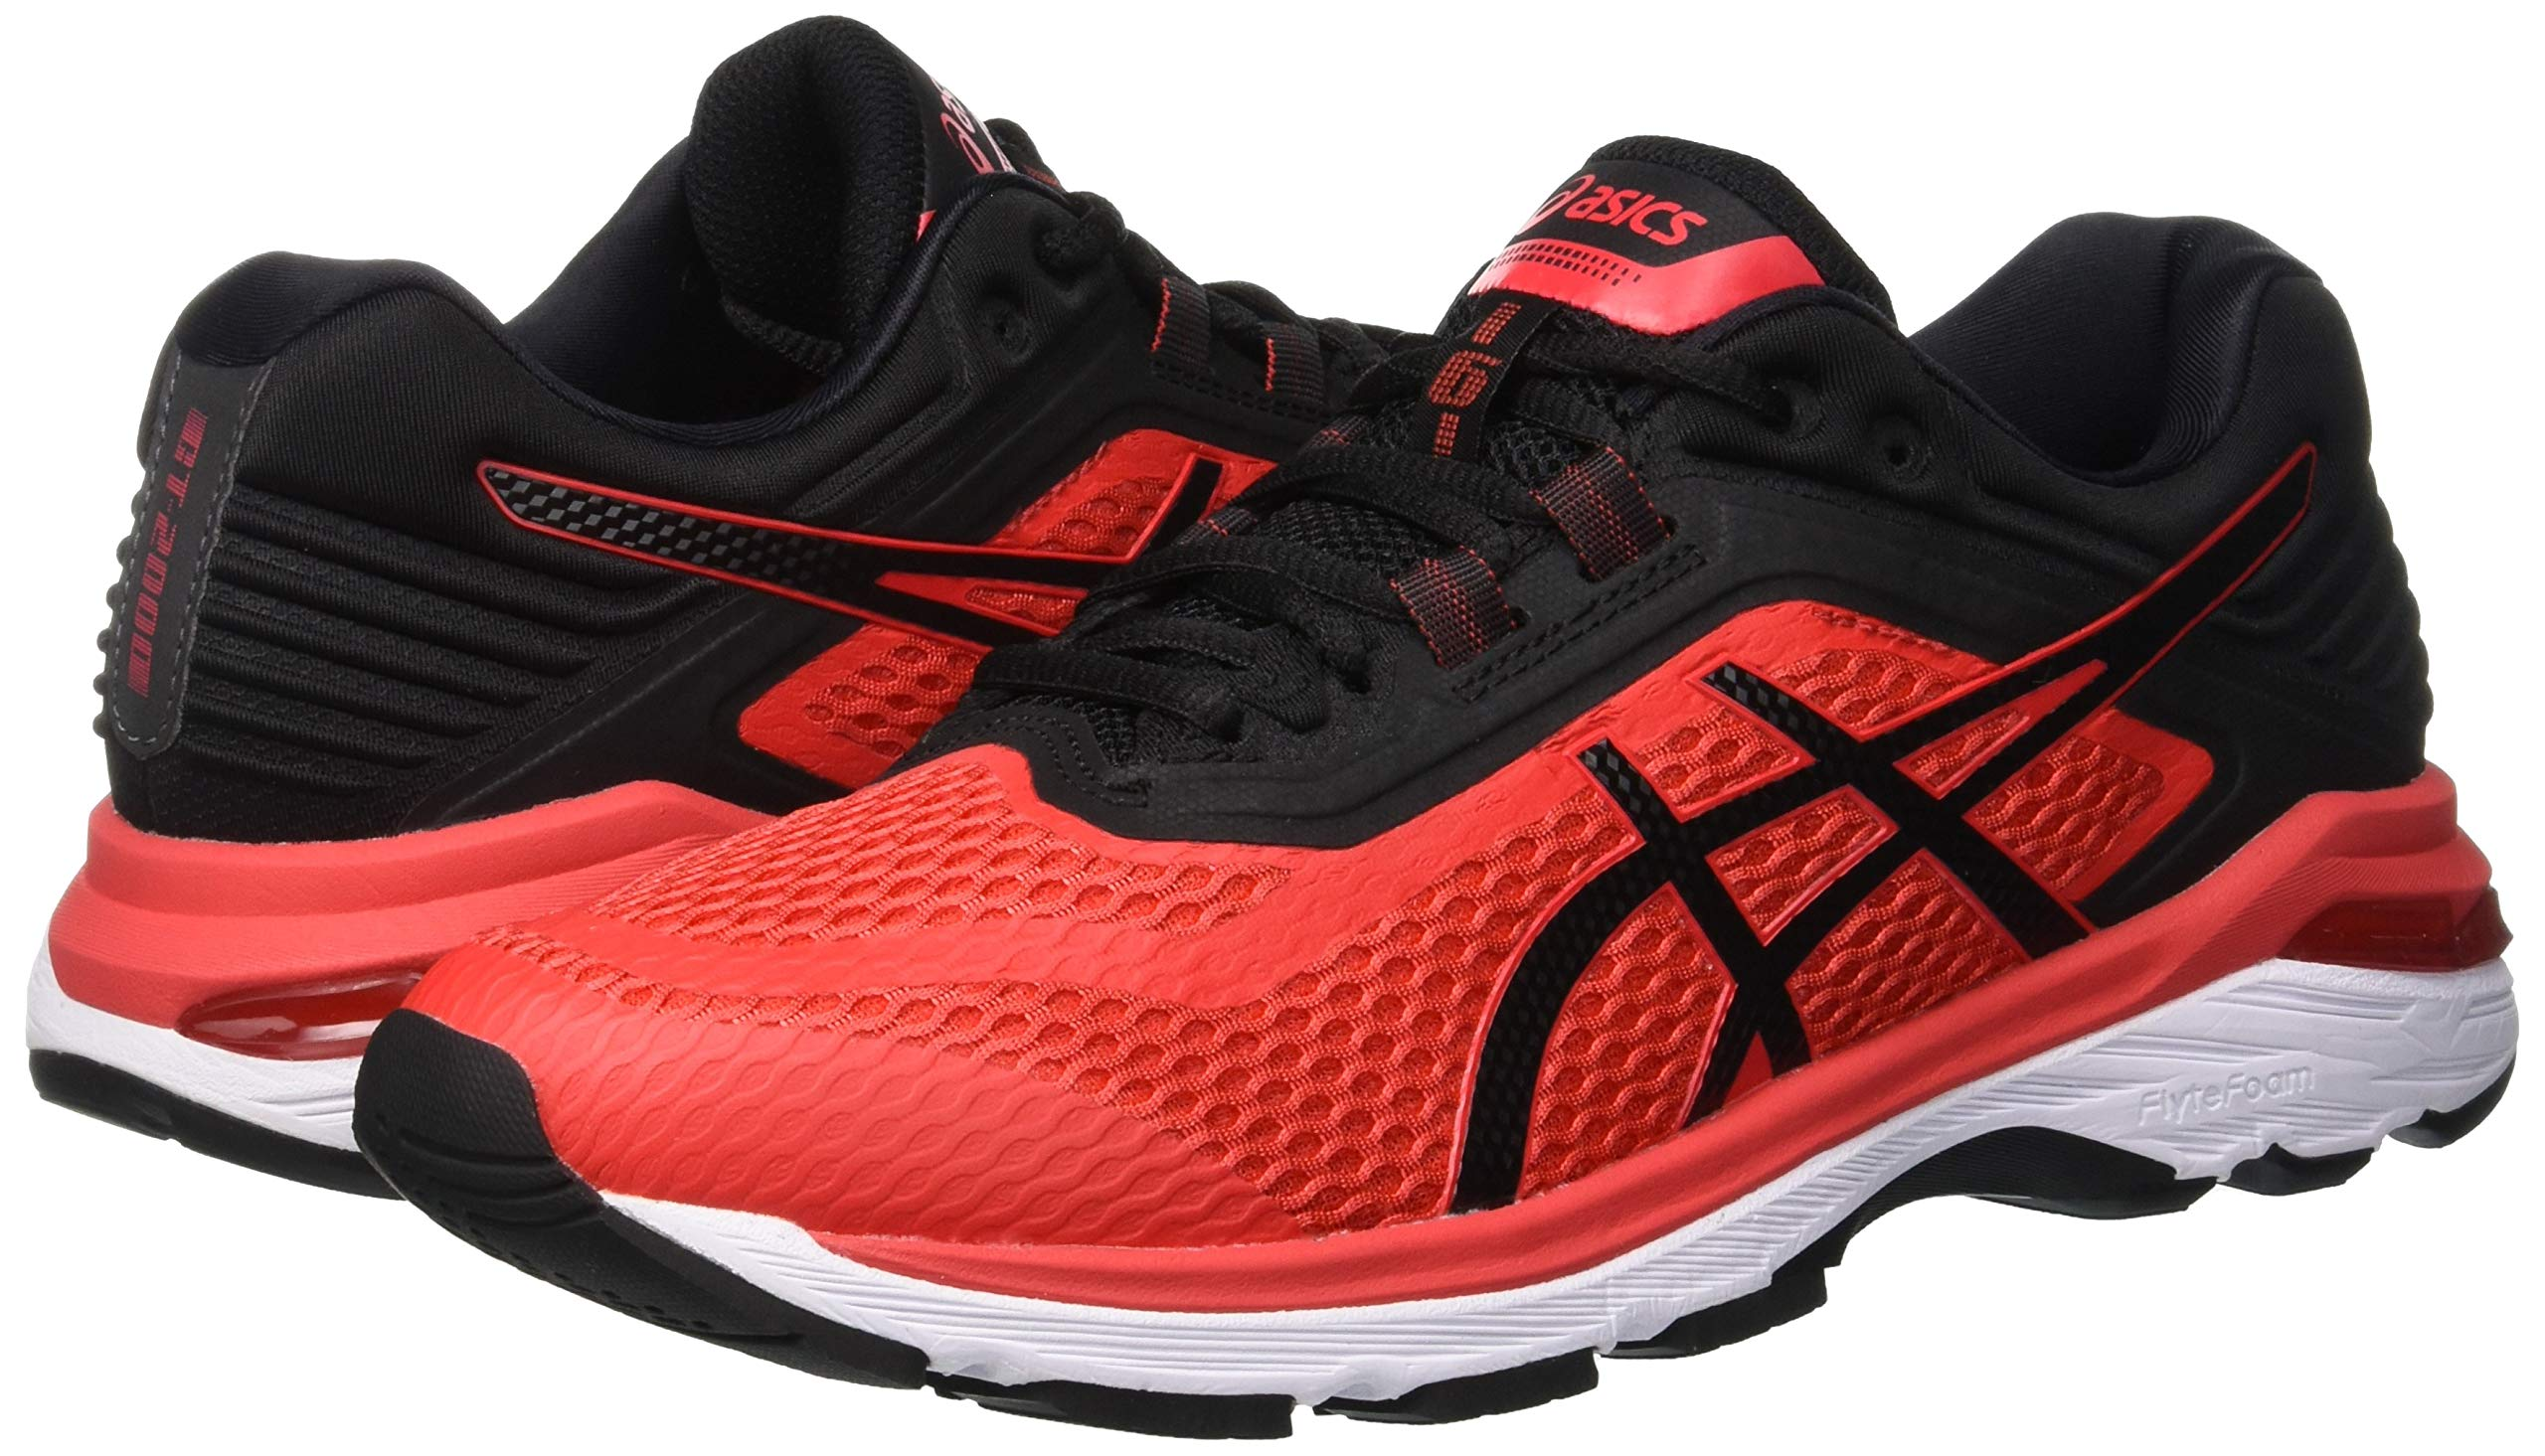 81mXogBlBZL - ASICS Men's Gt-2000 6 Trail Plasmaguard Running Shoes, 15 UK